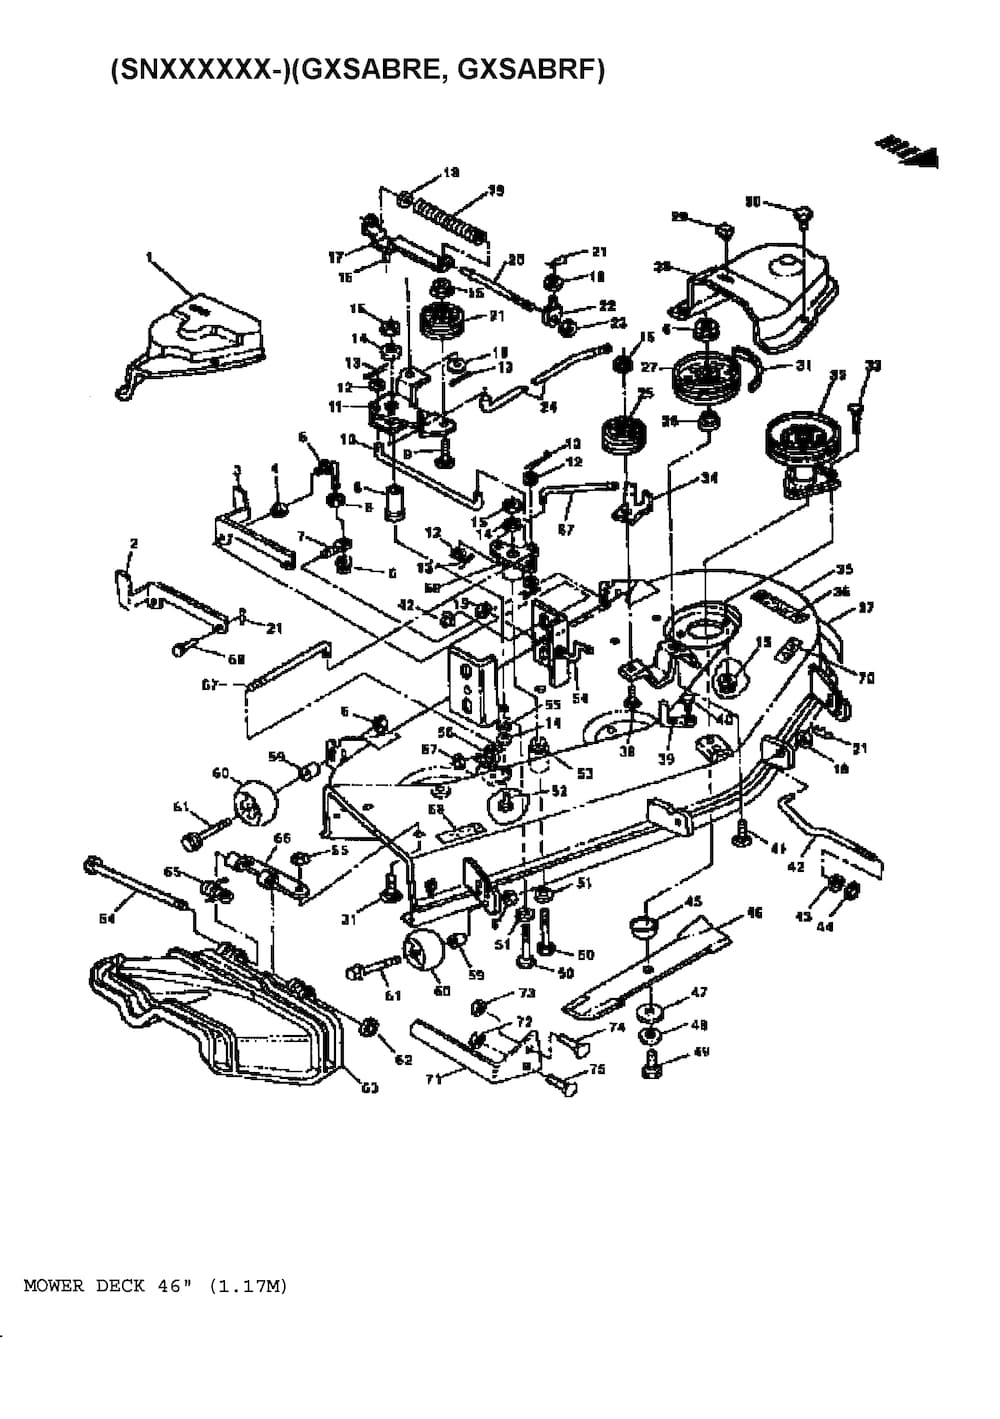 John Deere Gt225 Wiring Diagram on mower deck parts